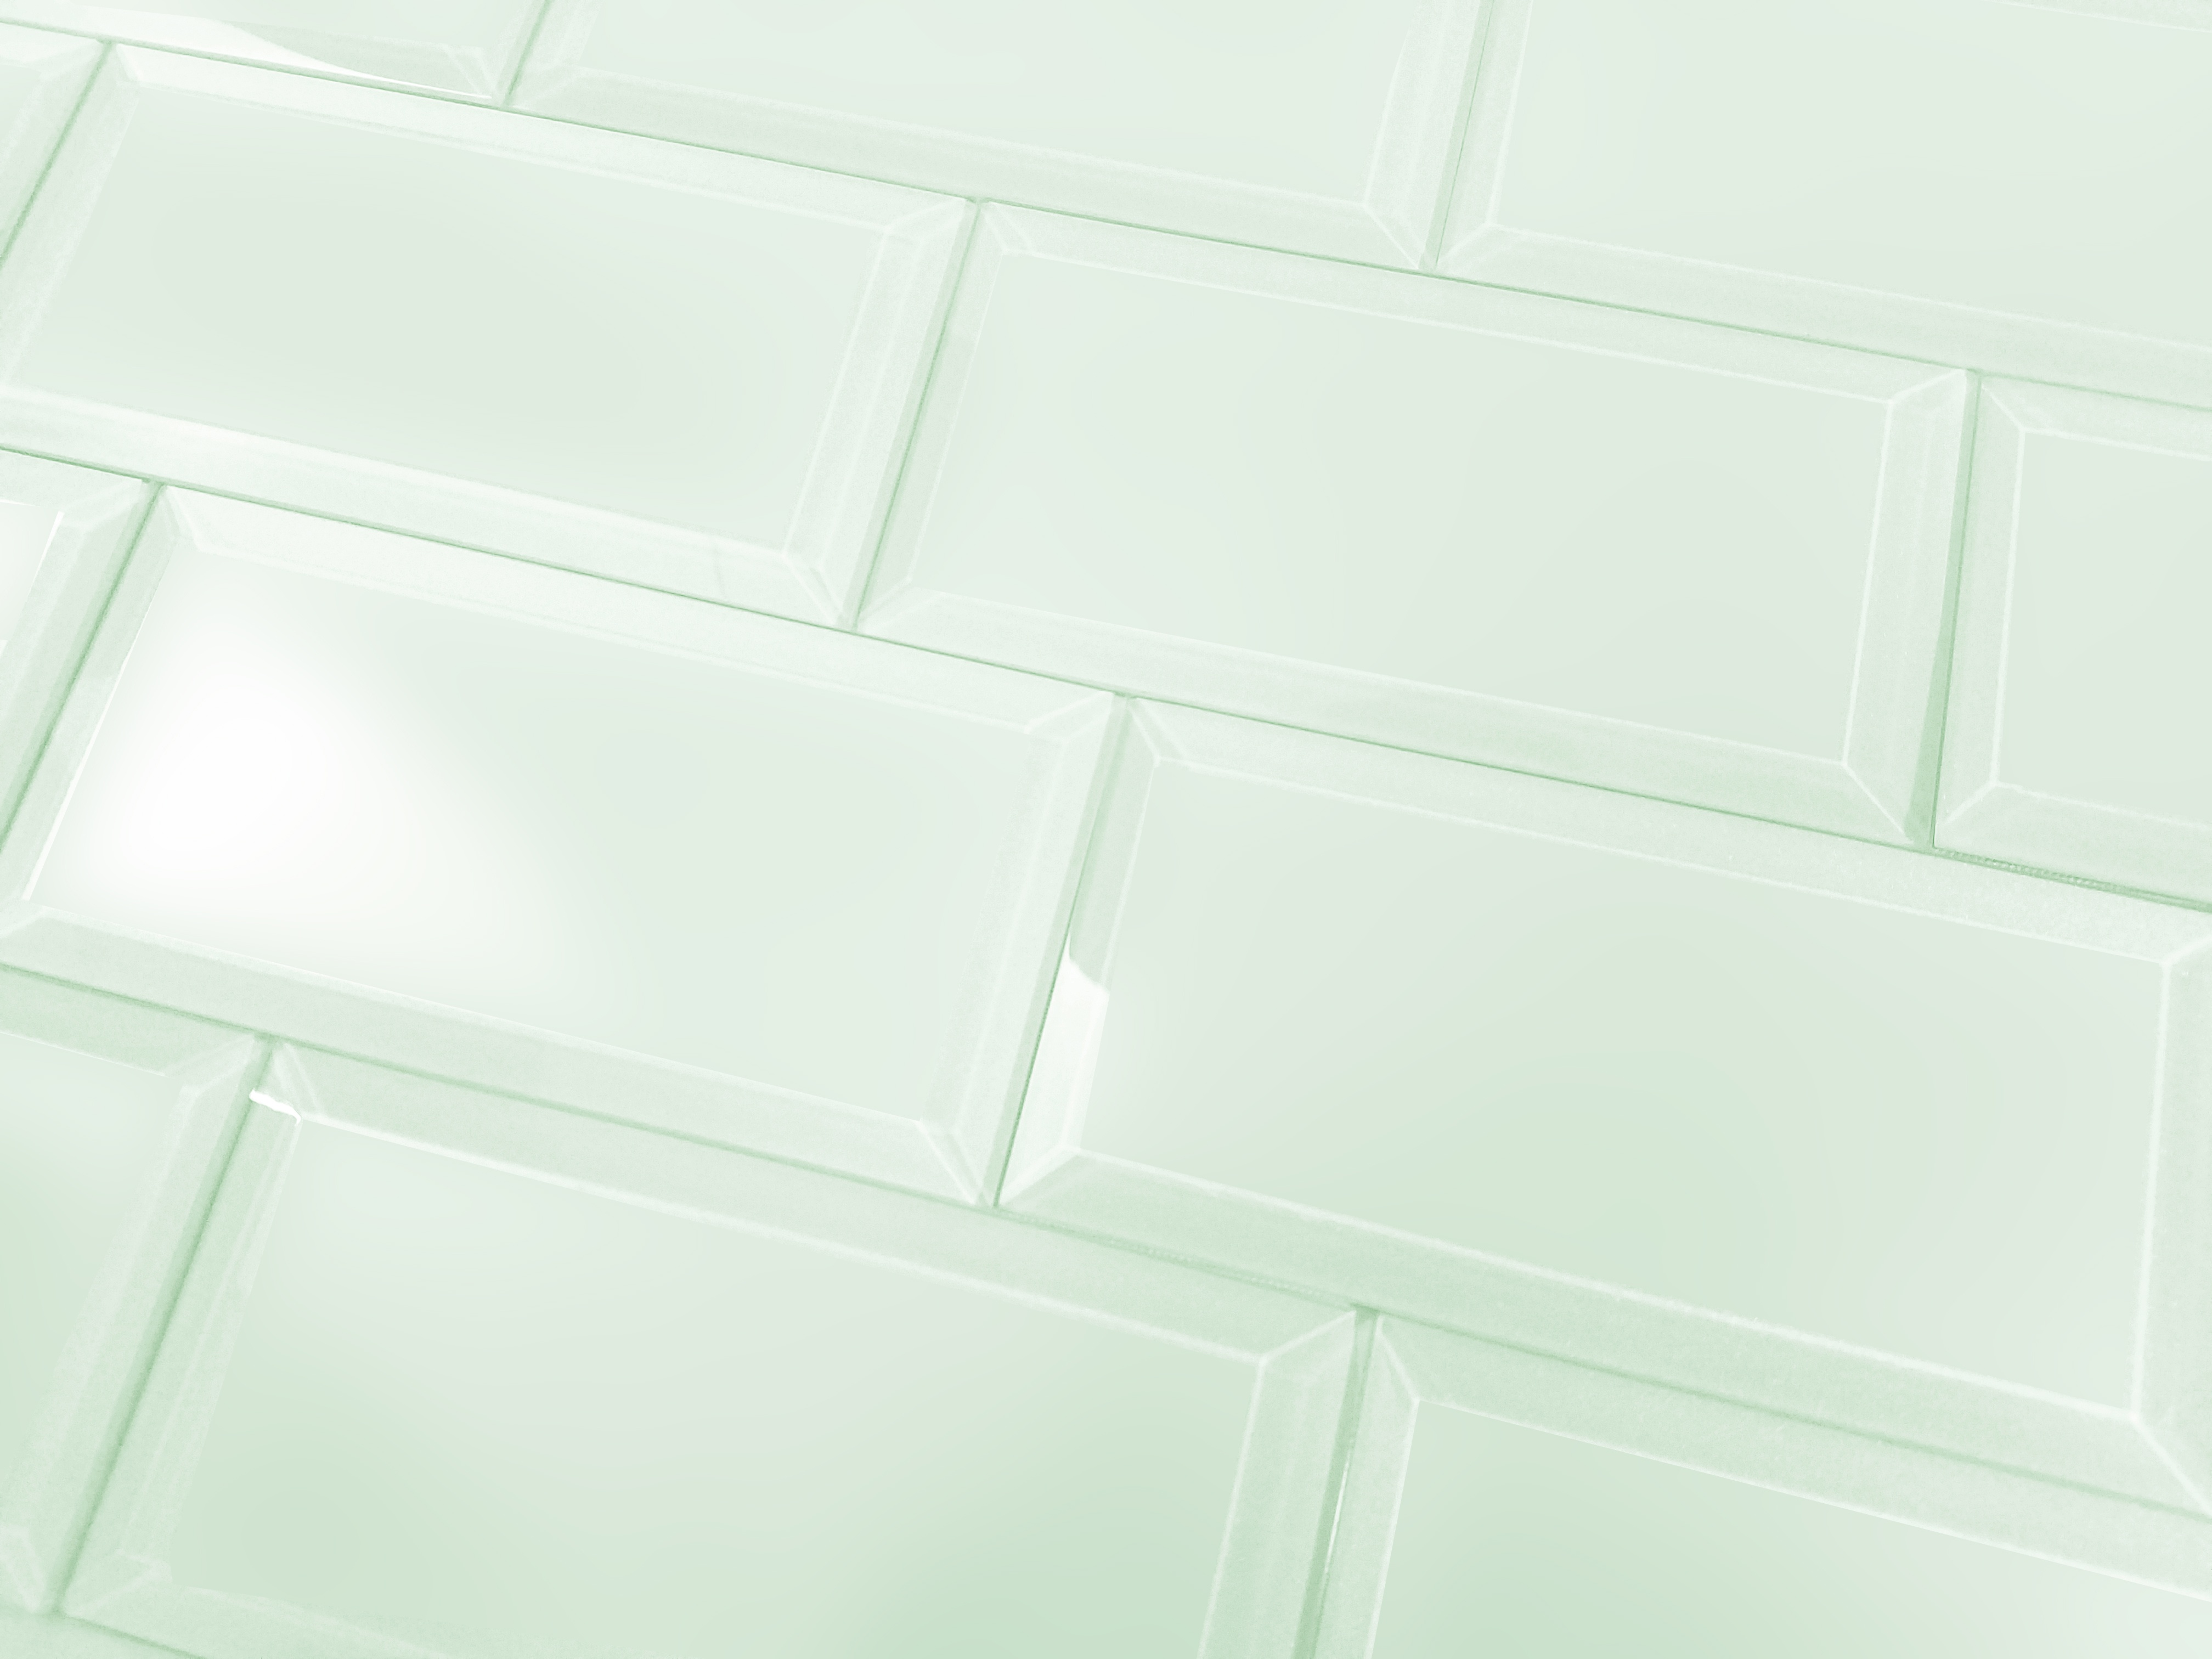 Frosted Elegance 3 in x 6 in Glass Subway Tile in MARIE ANTOINETTE Matte